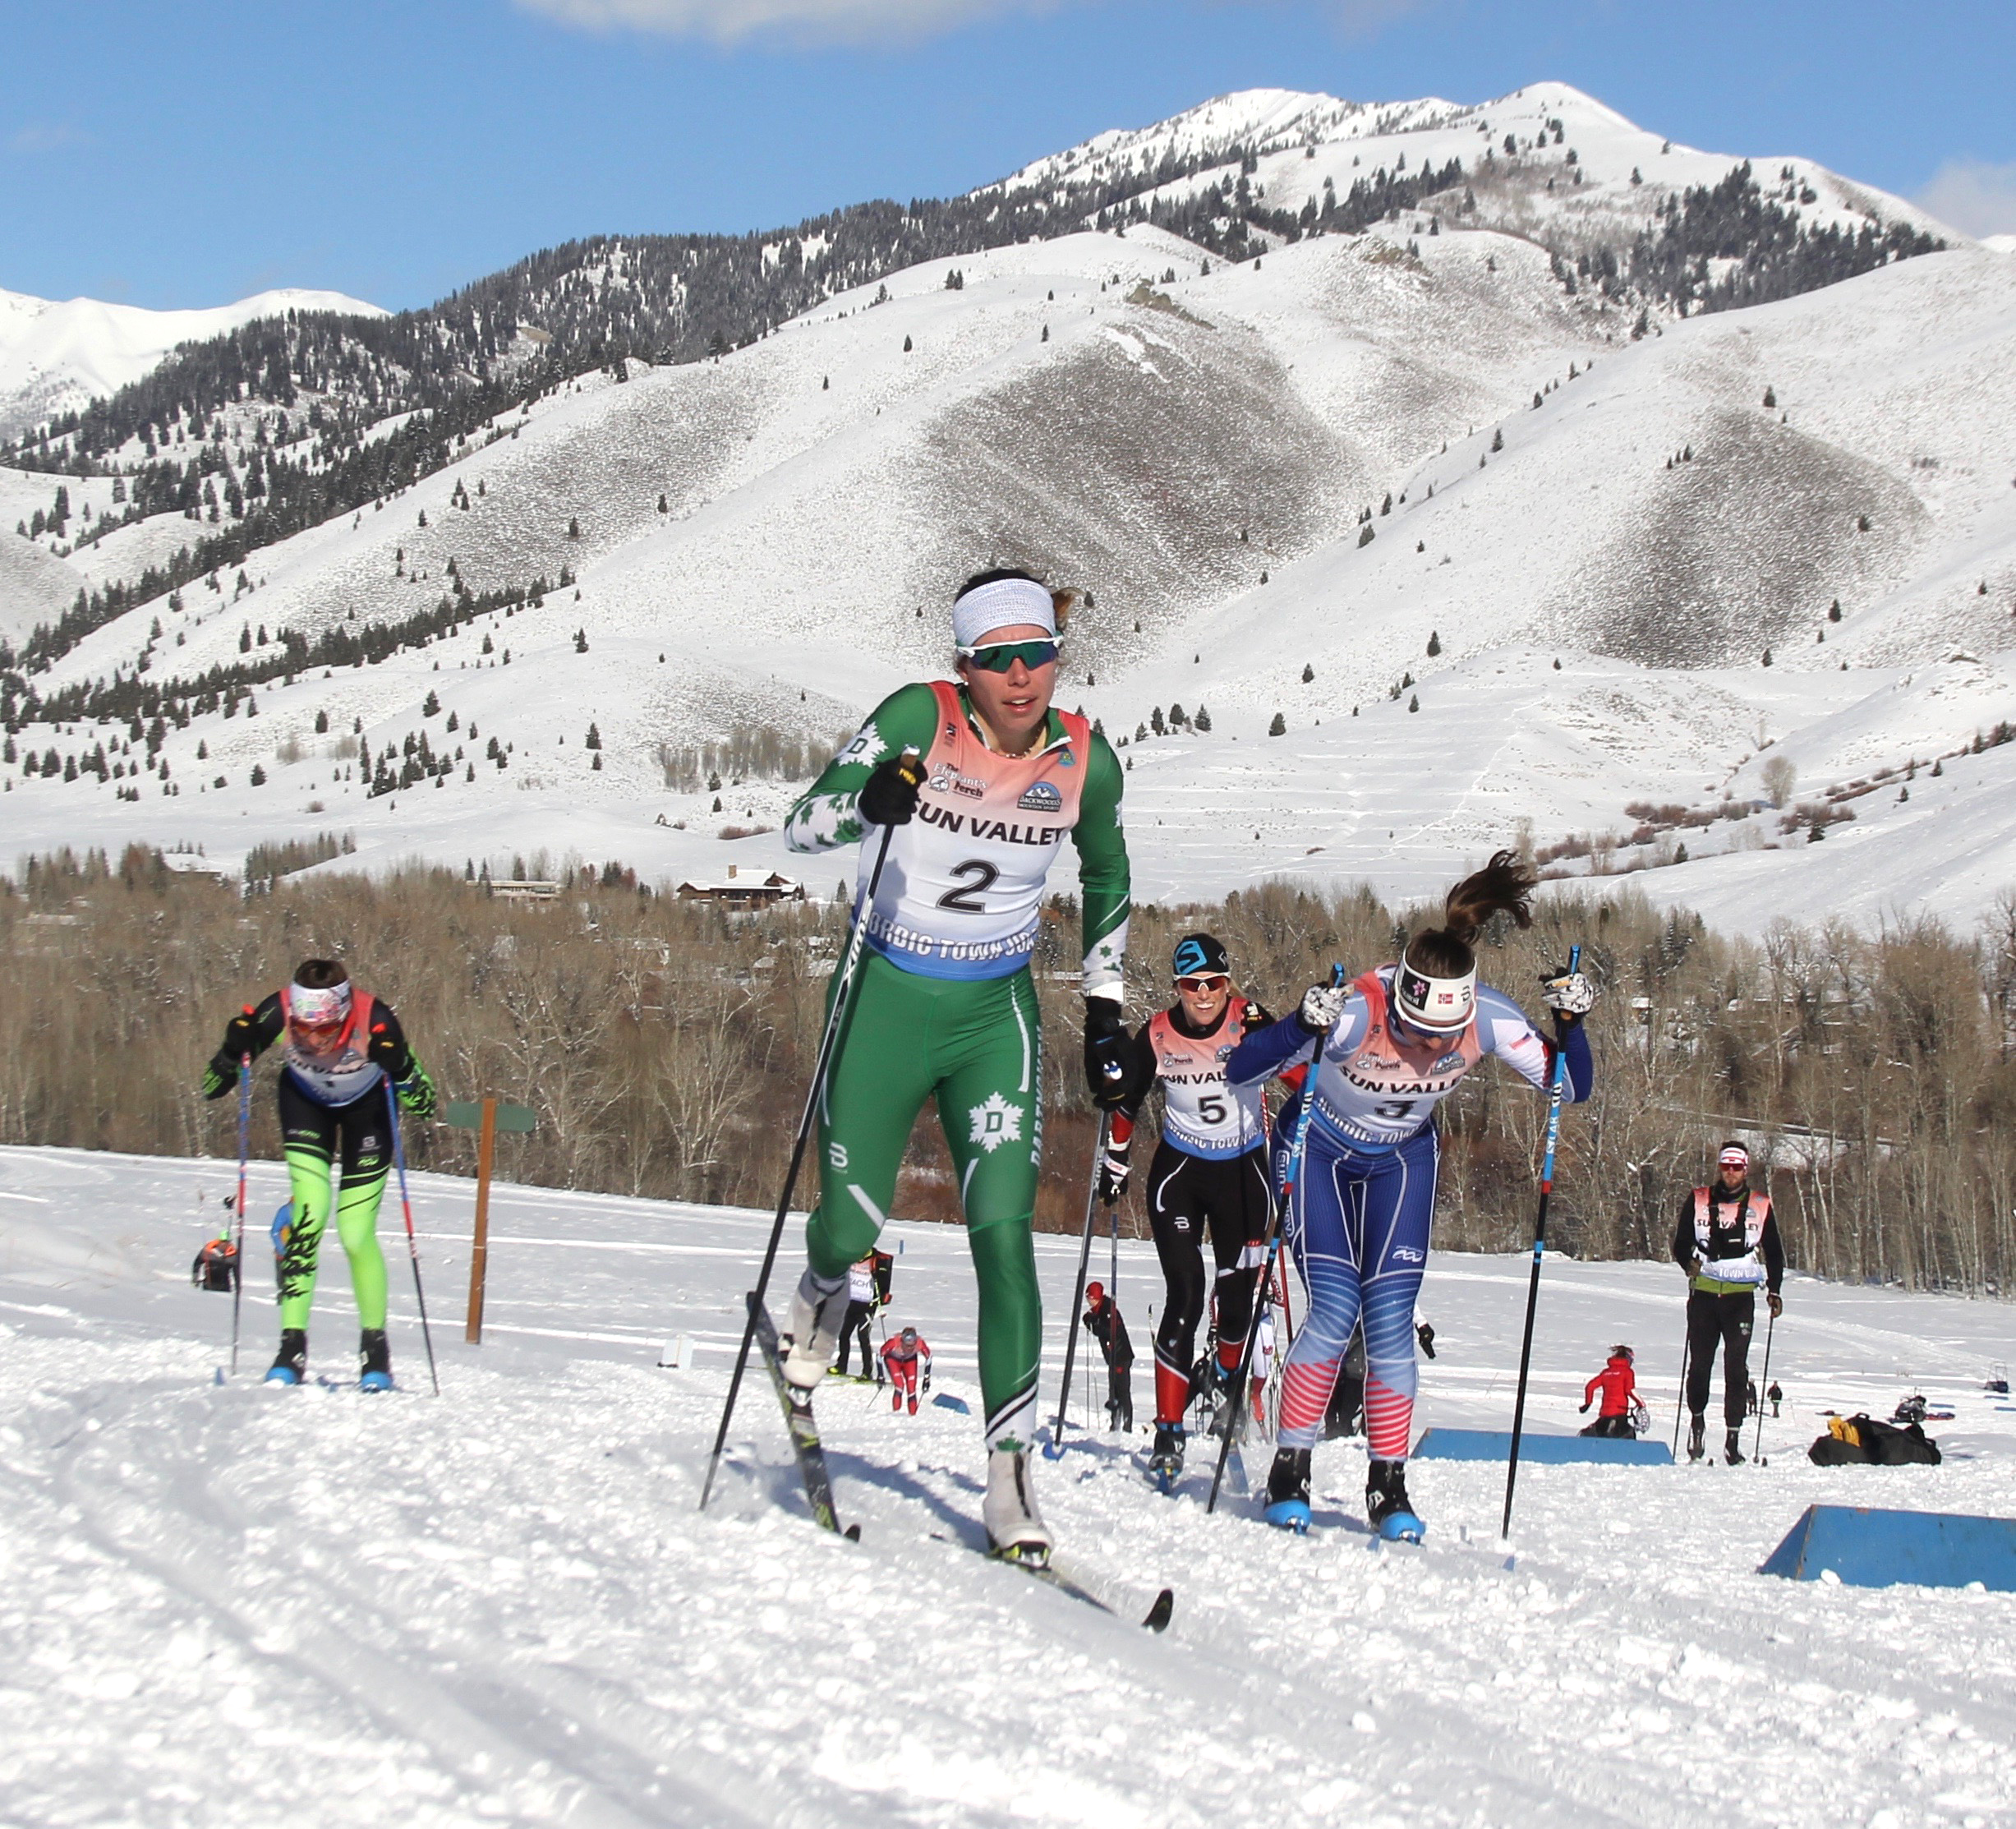 Katherine Ogden leads the women's classic sprint at round 2 of the SuperTour in Sun Valley, Idaho.